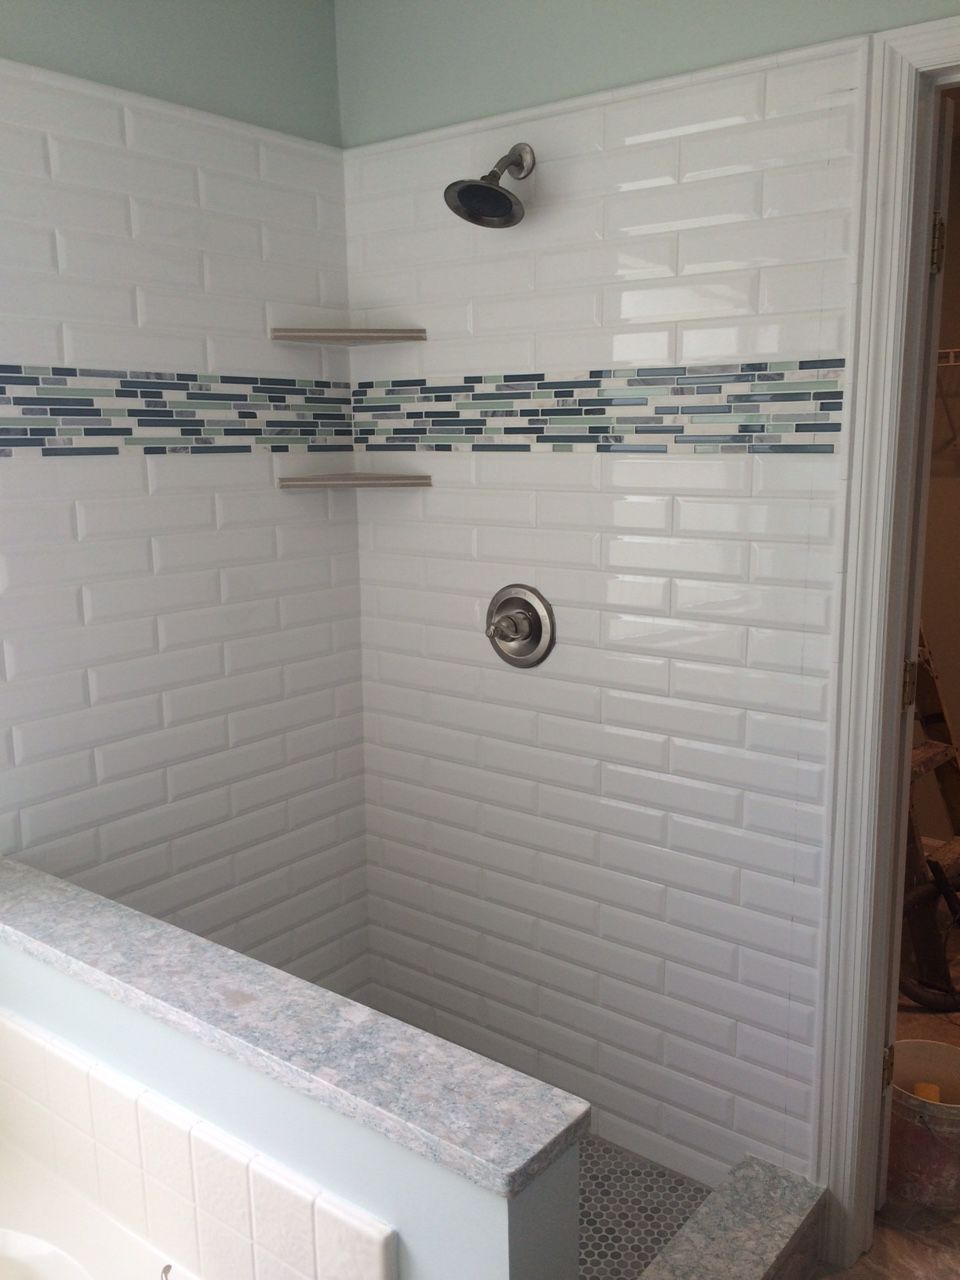 Shower Floor Tiles Which Why And How: Selecting Shower Tile - Tips And Tricks